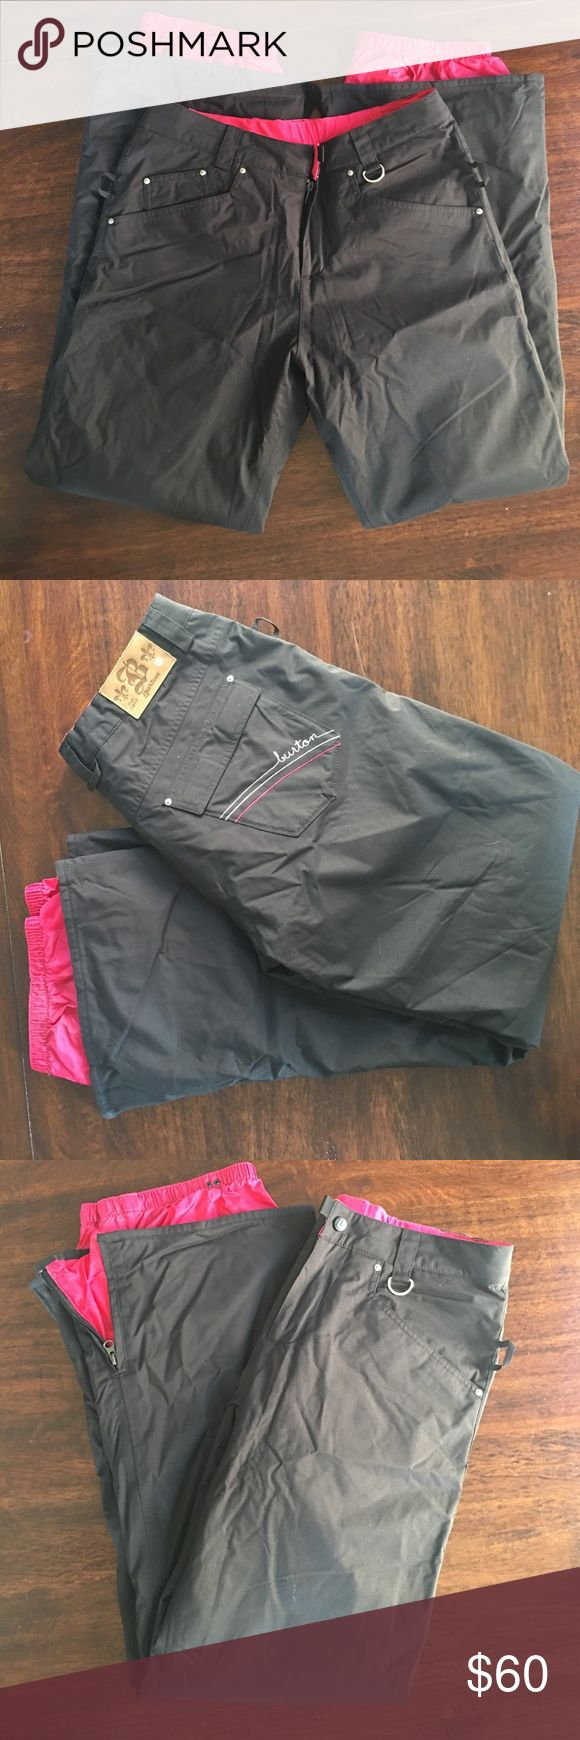 Burton Snowboarding Pants Burton Snowboarding Pants. Black color with pink accents. Comfy and fits well. No major wear and tear. Only worn a few times. Great quality. Size S. Burton Other